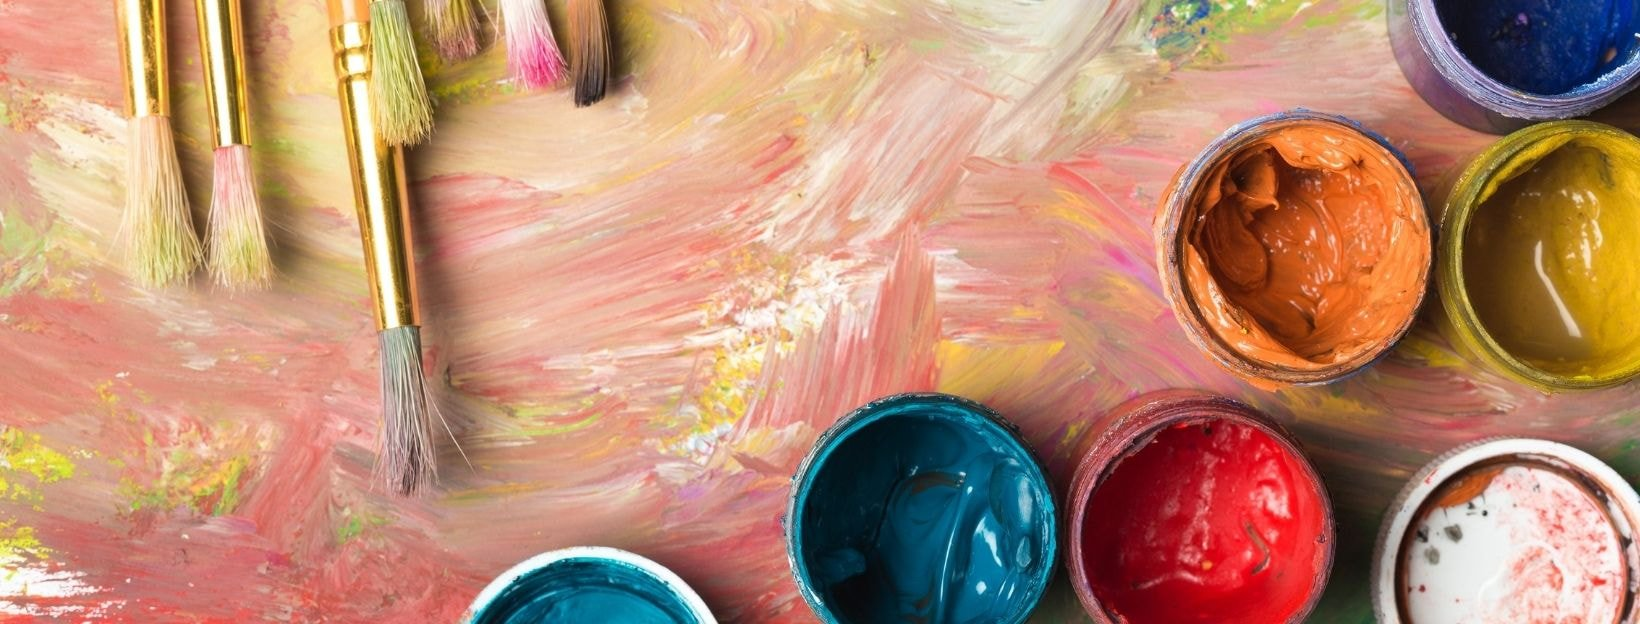 BANNER-Canva-MADFCQLSE5o-painting-materials-over-paint:.jpg